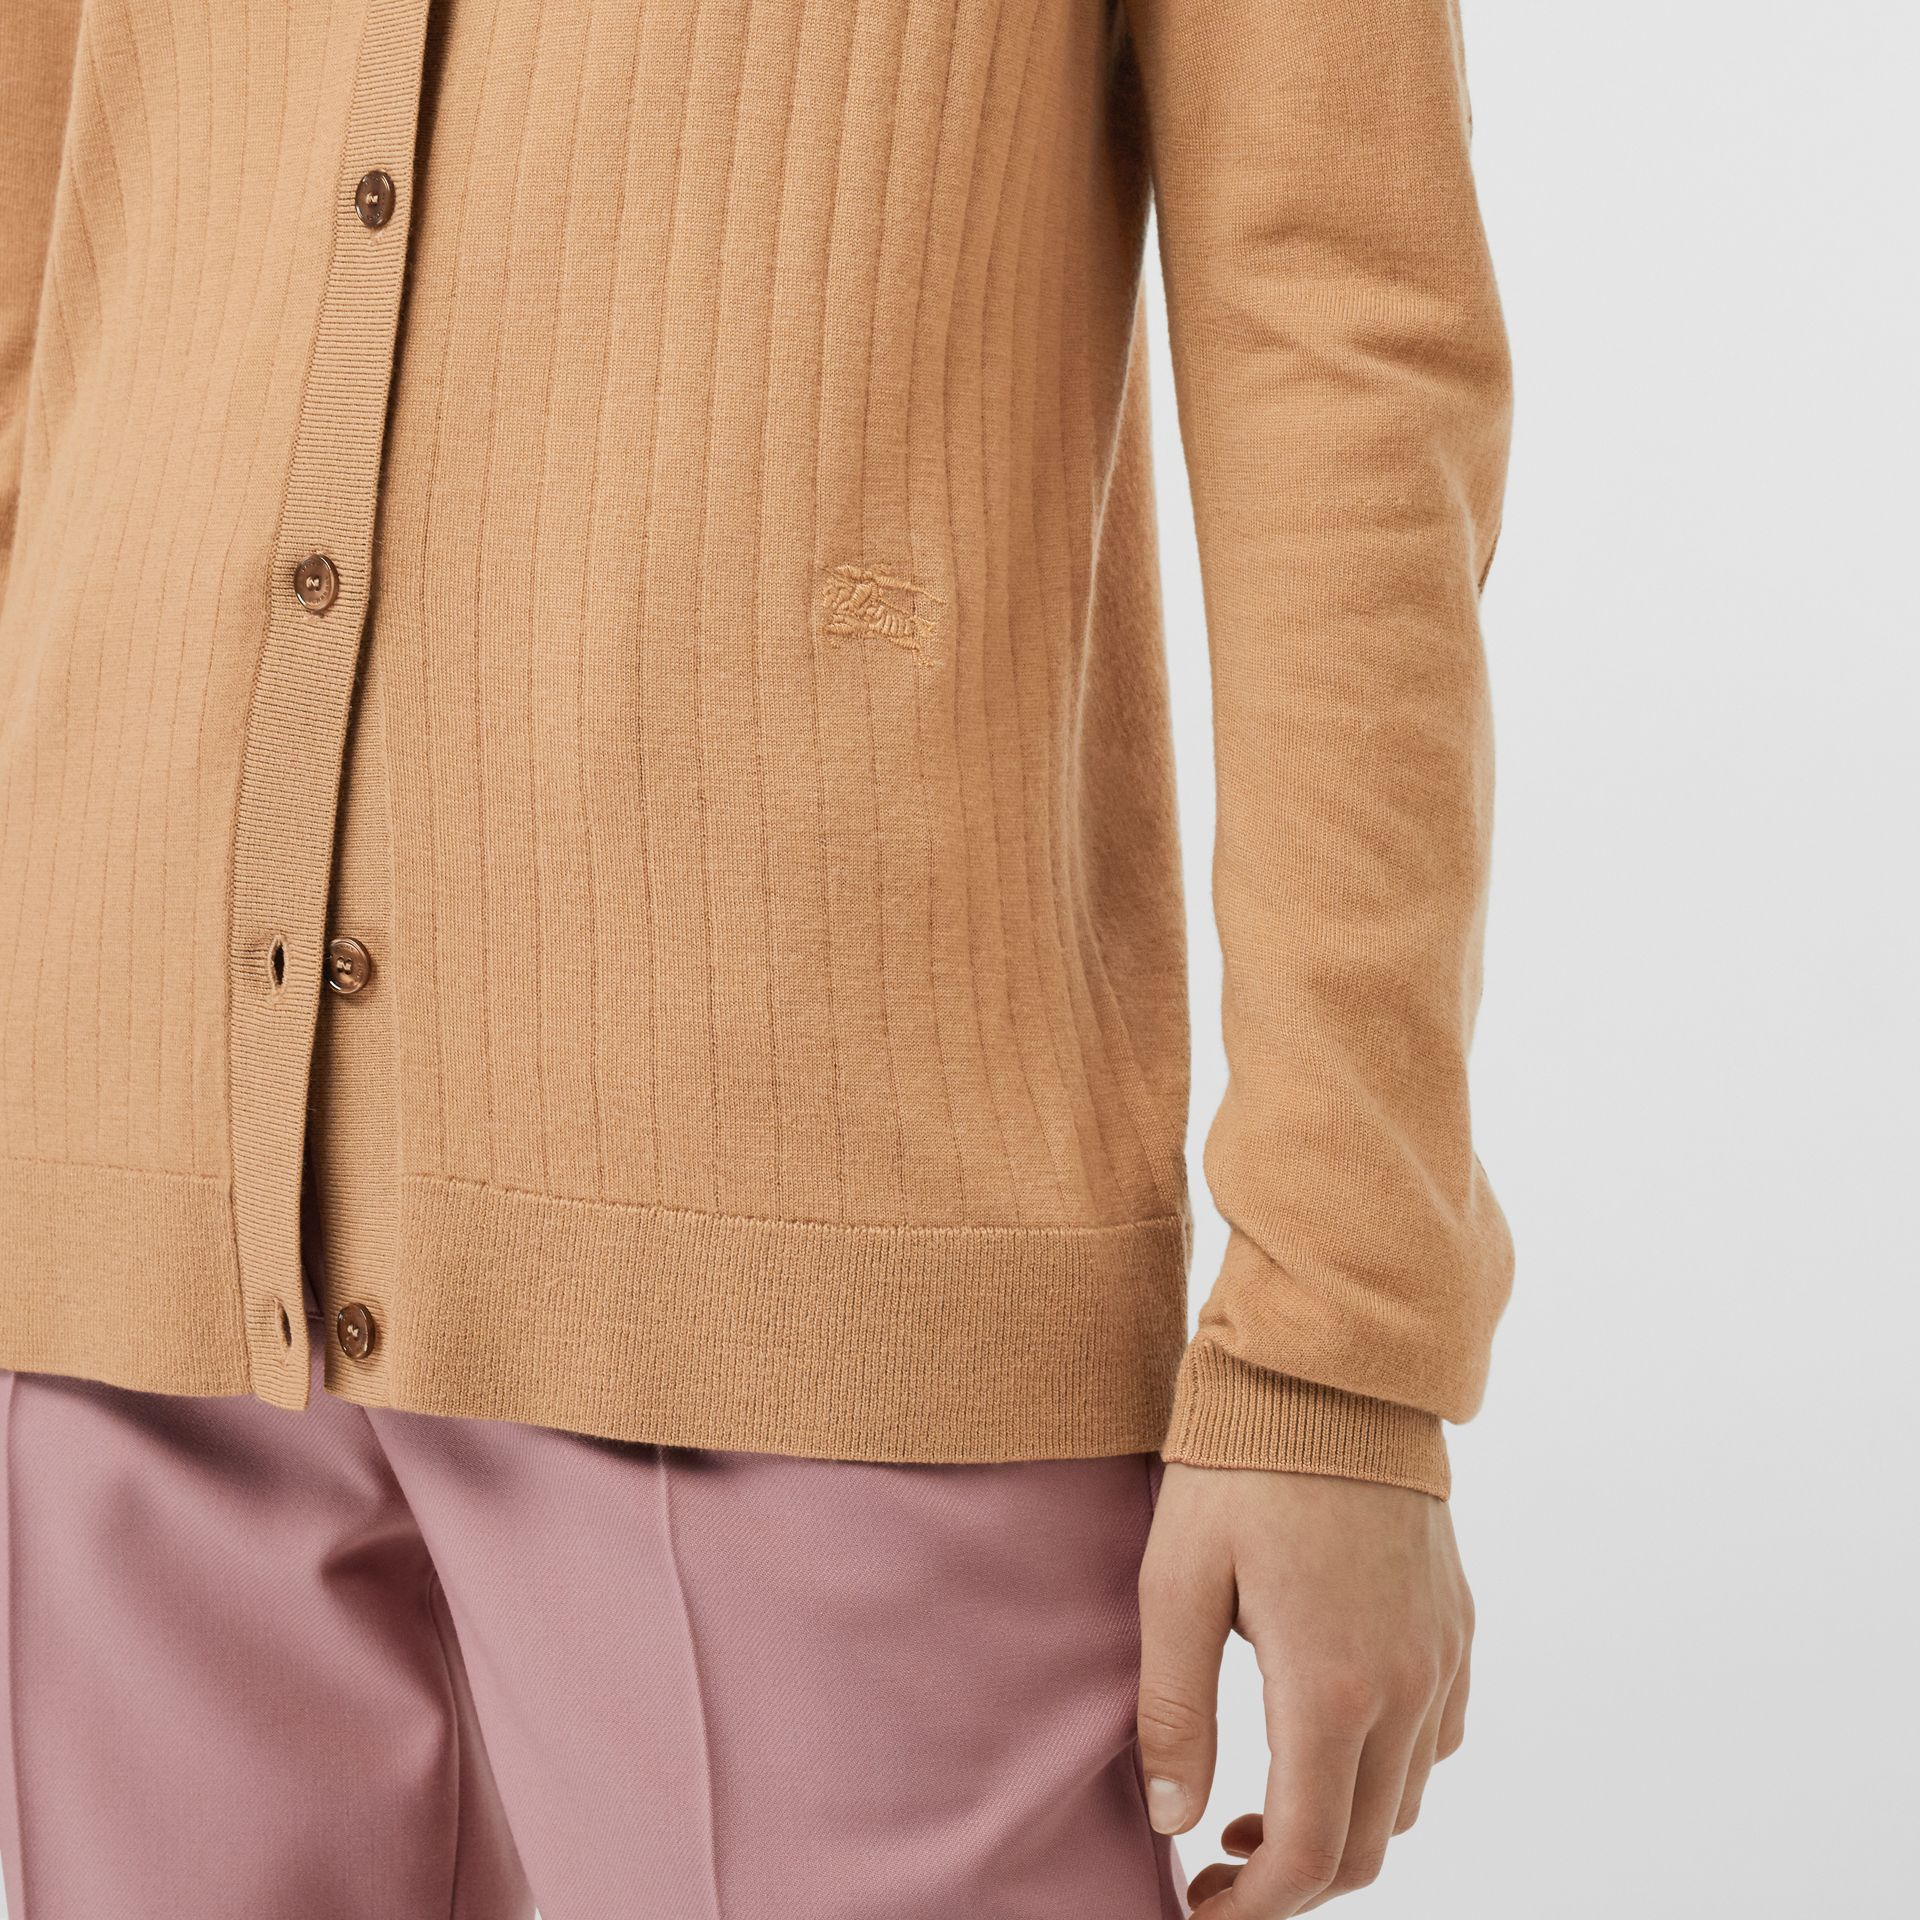 Rib Knit Cashmere Cardigan in Camel - Women | Burberry - gallery image 1